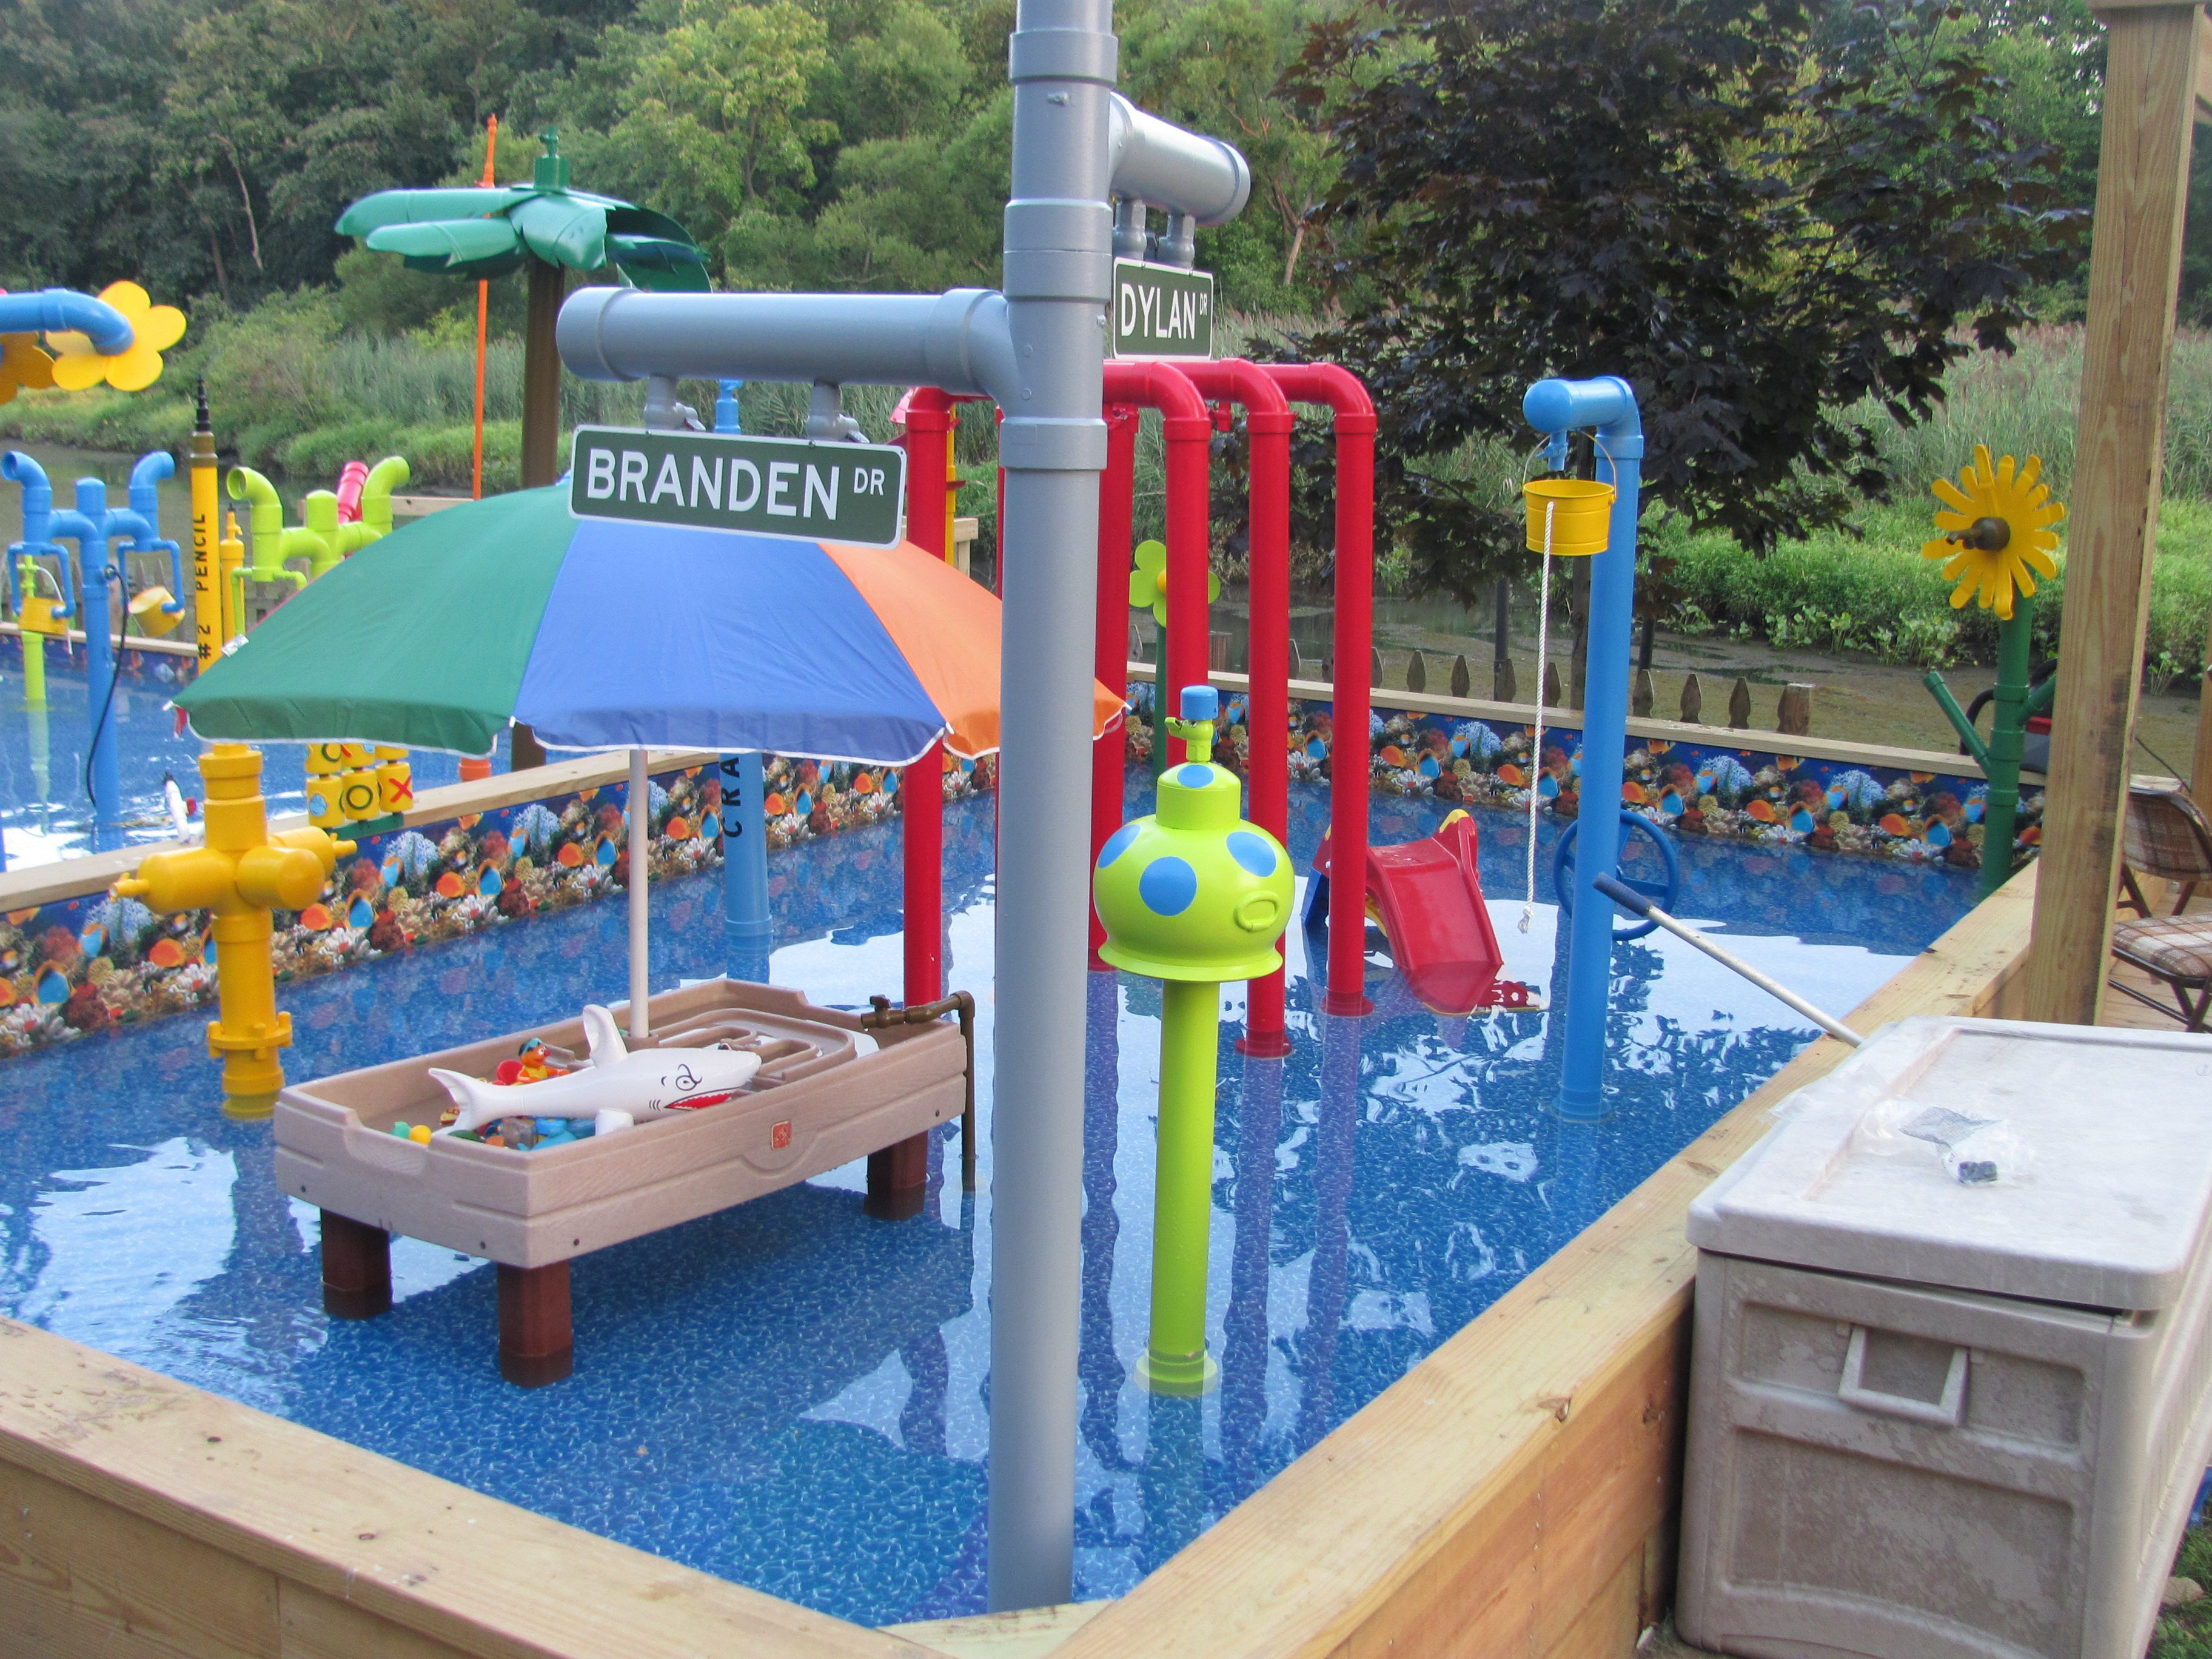 Best ideas about Above Ground Pool Pad Ideas . Save or Pin It has a dump bucket slides water cannons a kid Now.